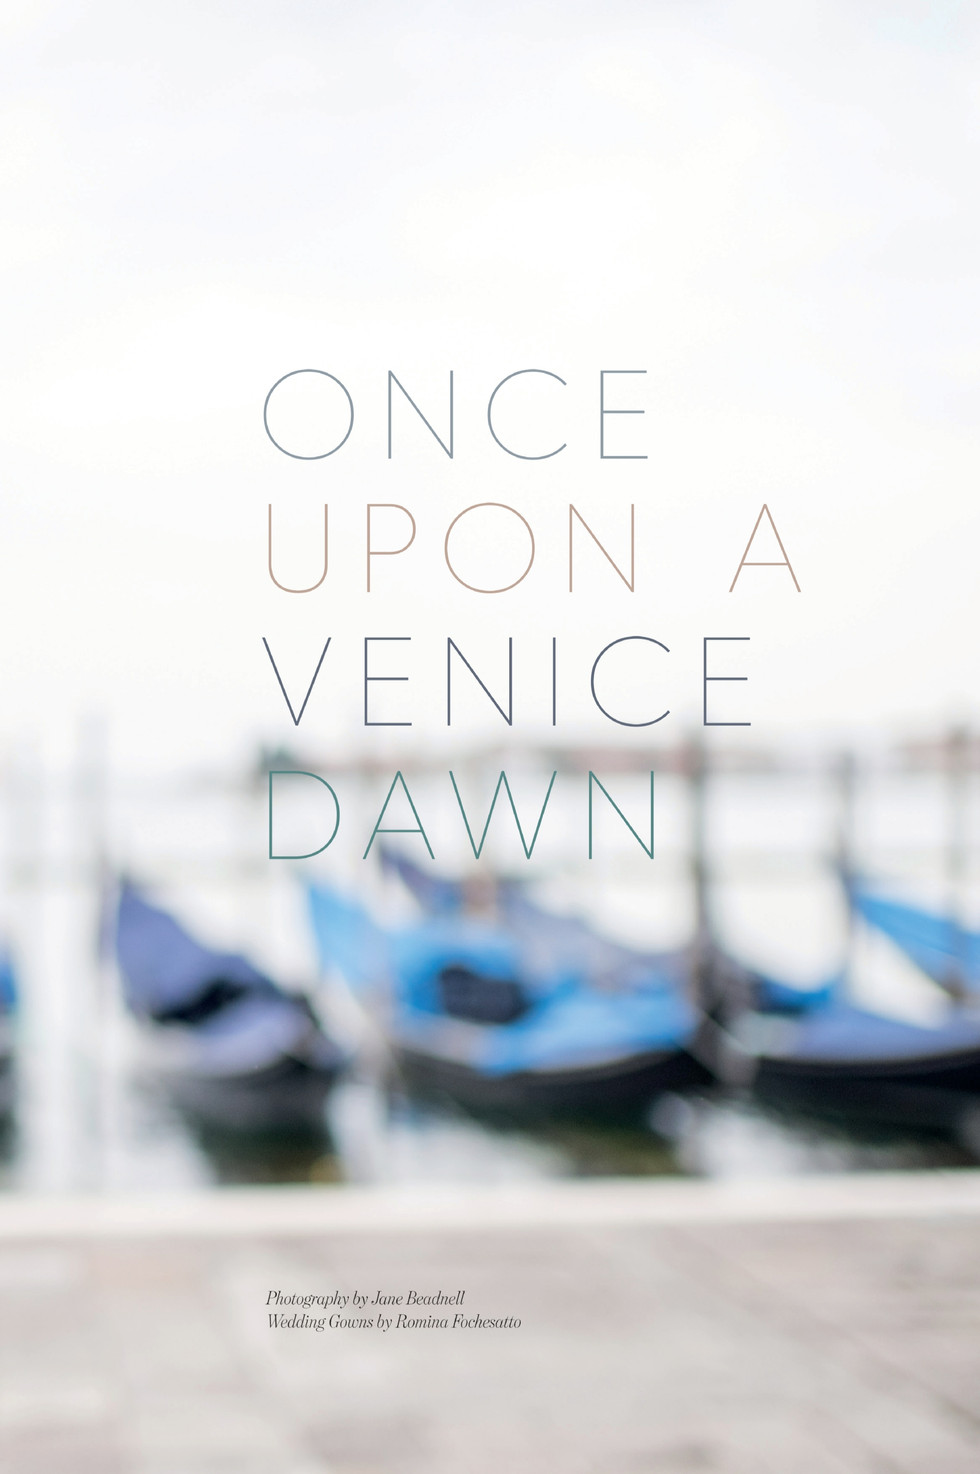 Once Upon a Venice Dawn